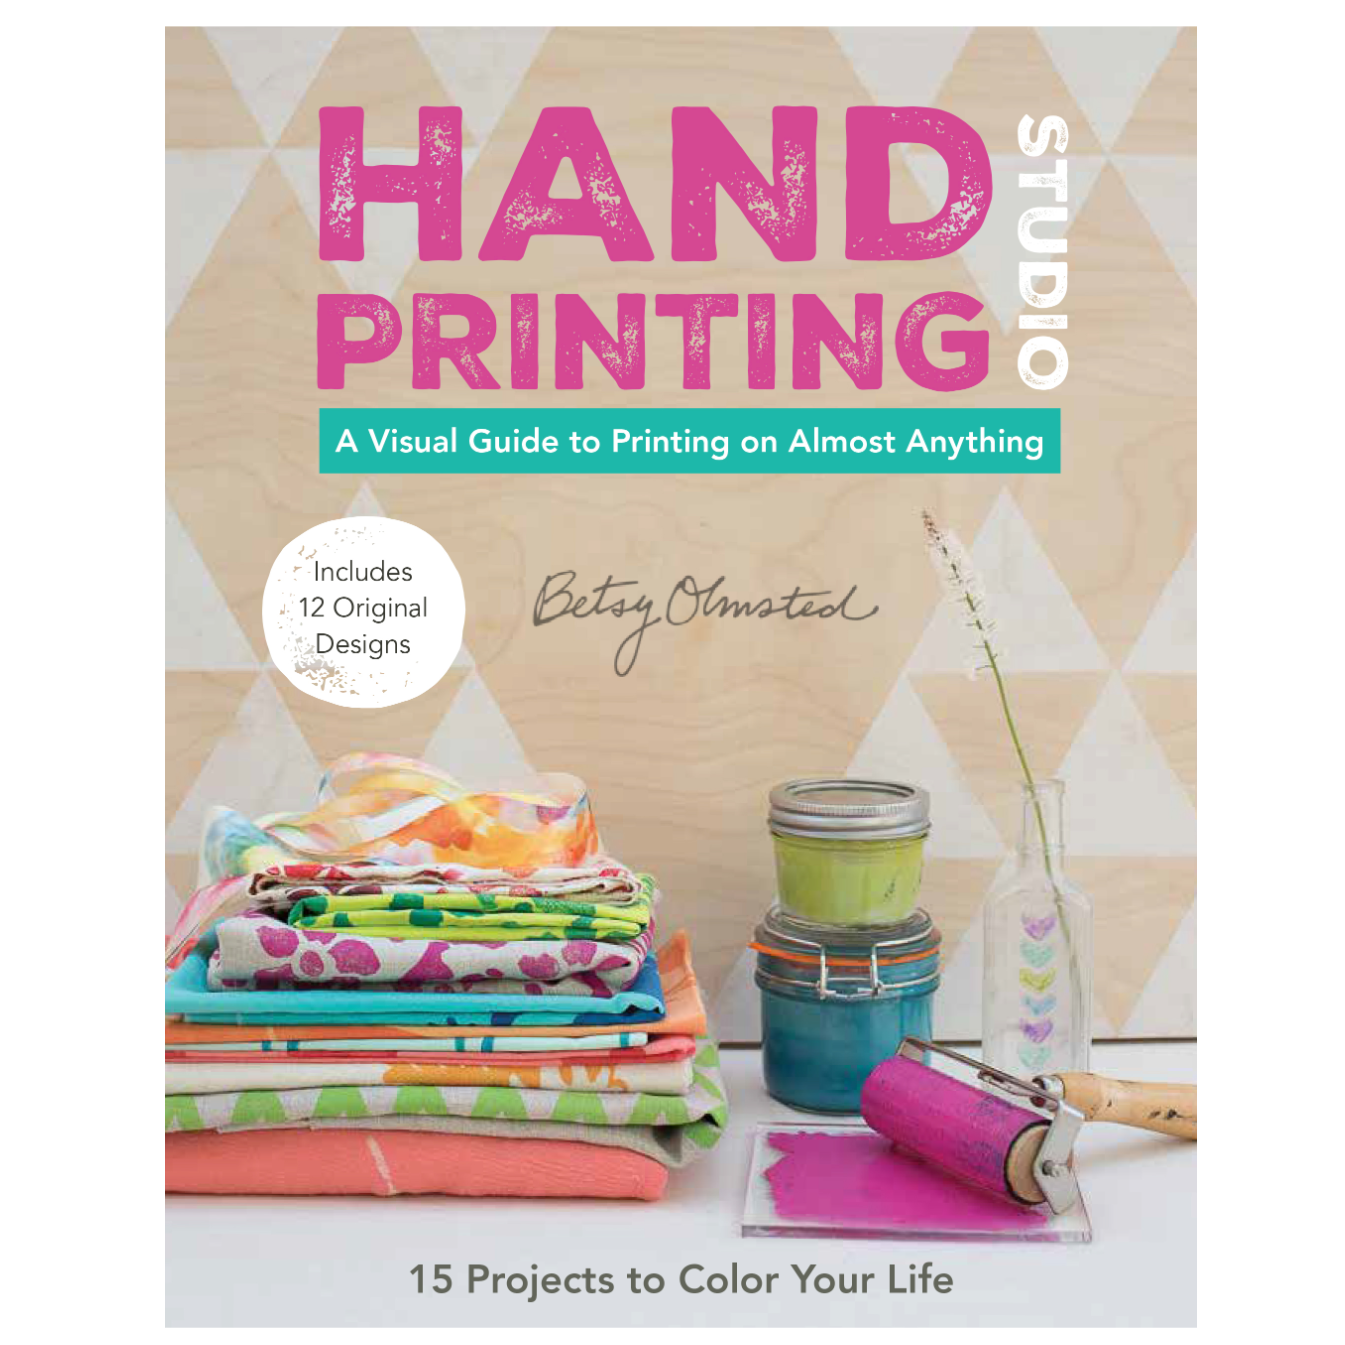 Hand Printing Studio Betsy Olmsted